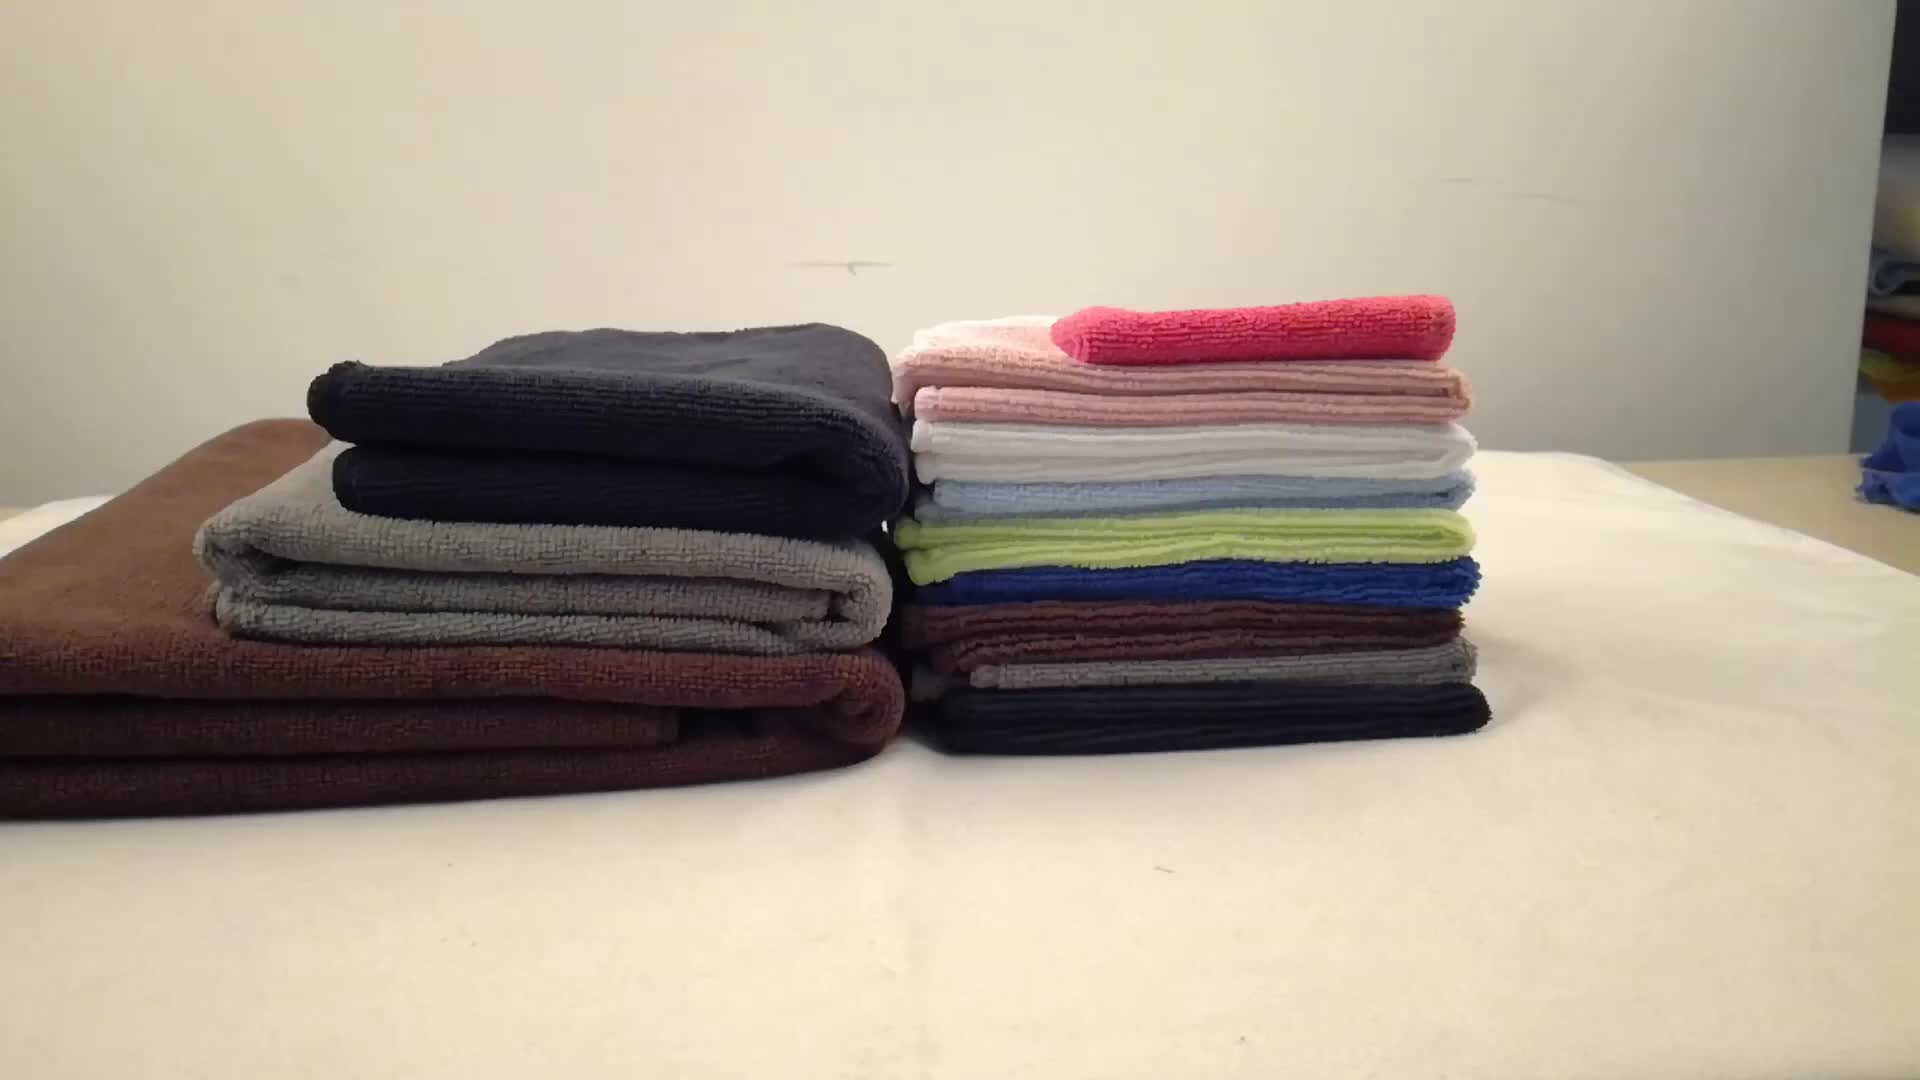 Sinland Ultra Absorbent Fast Drying Sports Travel Towels Bath Sheet